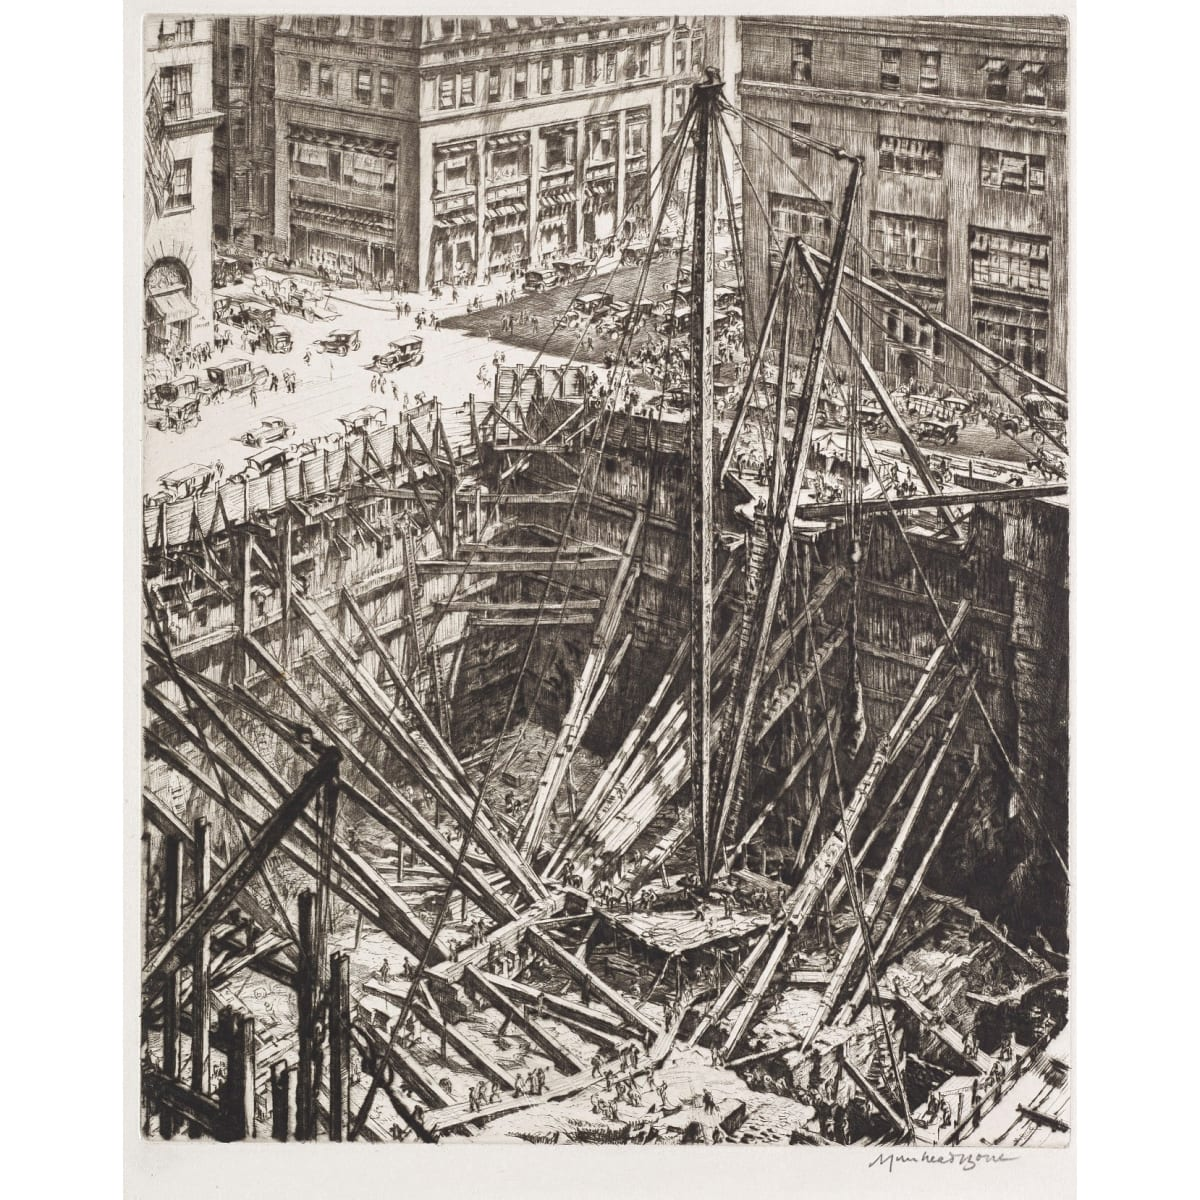 Sir Muirhead Bone A Manhattan excavation, 1923 signed in plate; signed in pencil to margin and initialled MB indicating a proof reserved for the artist drypoint plate size: 12 1/4 x 10 1/8 inches; sheet size: 15 1/2 x 12 7/8 inches 1 of 18 impressions in the 13th state (of 19), 151 copies in all